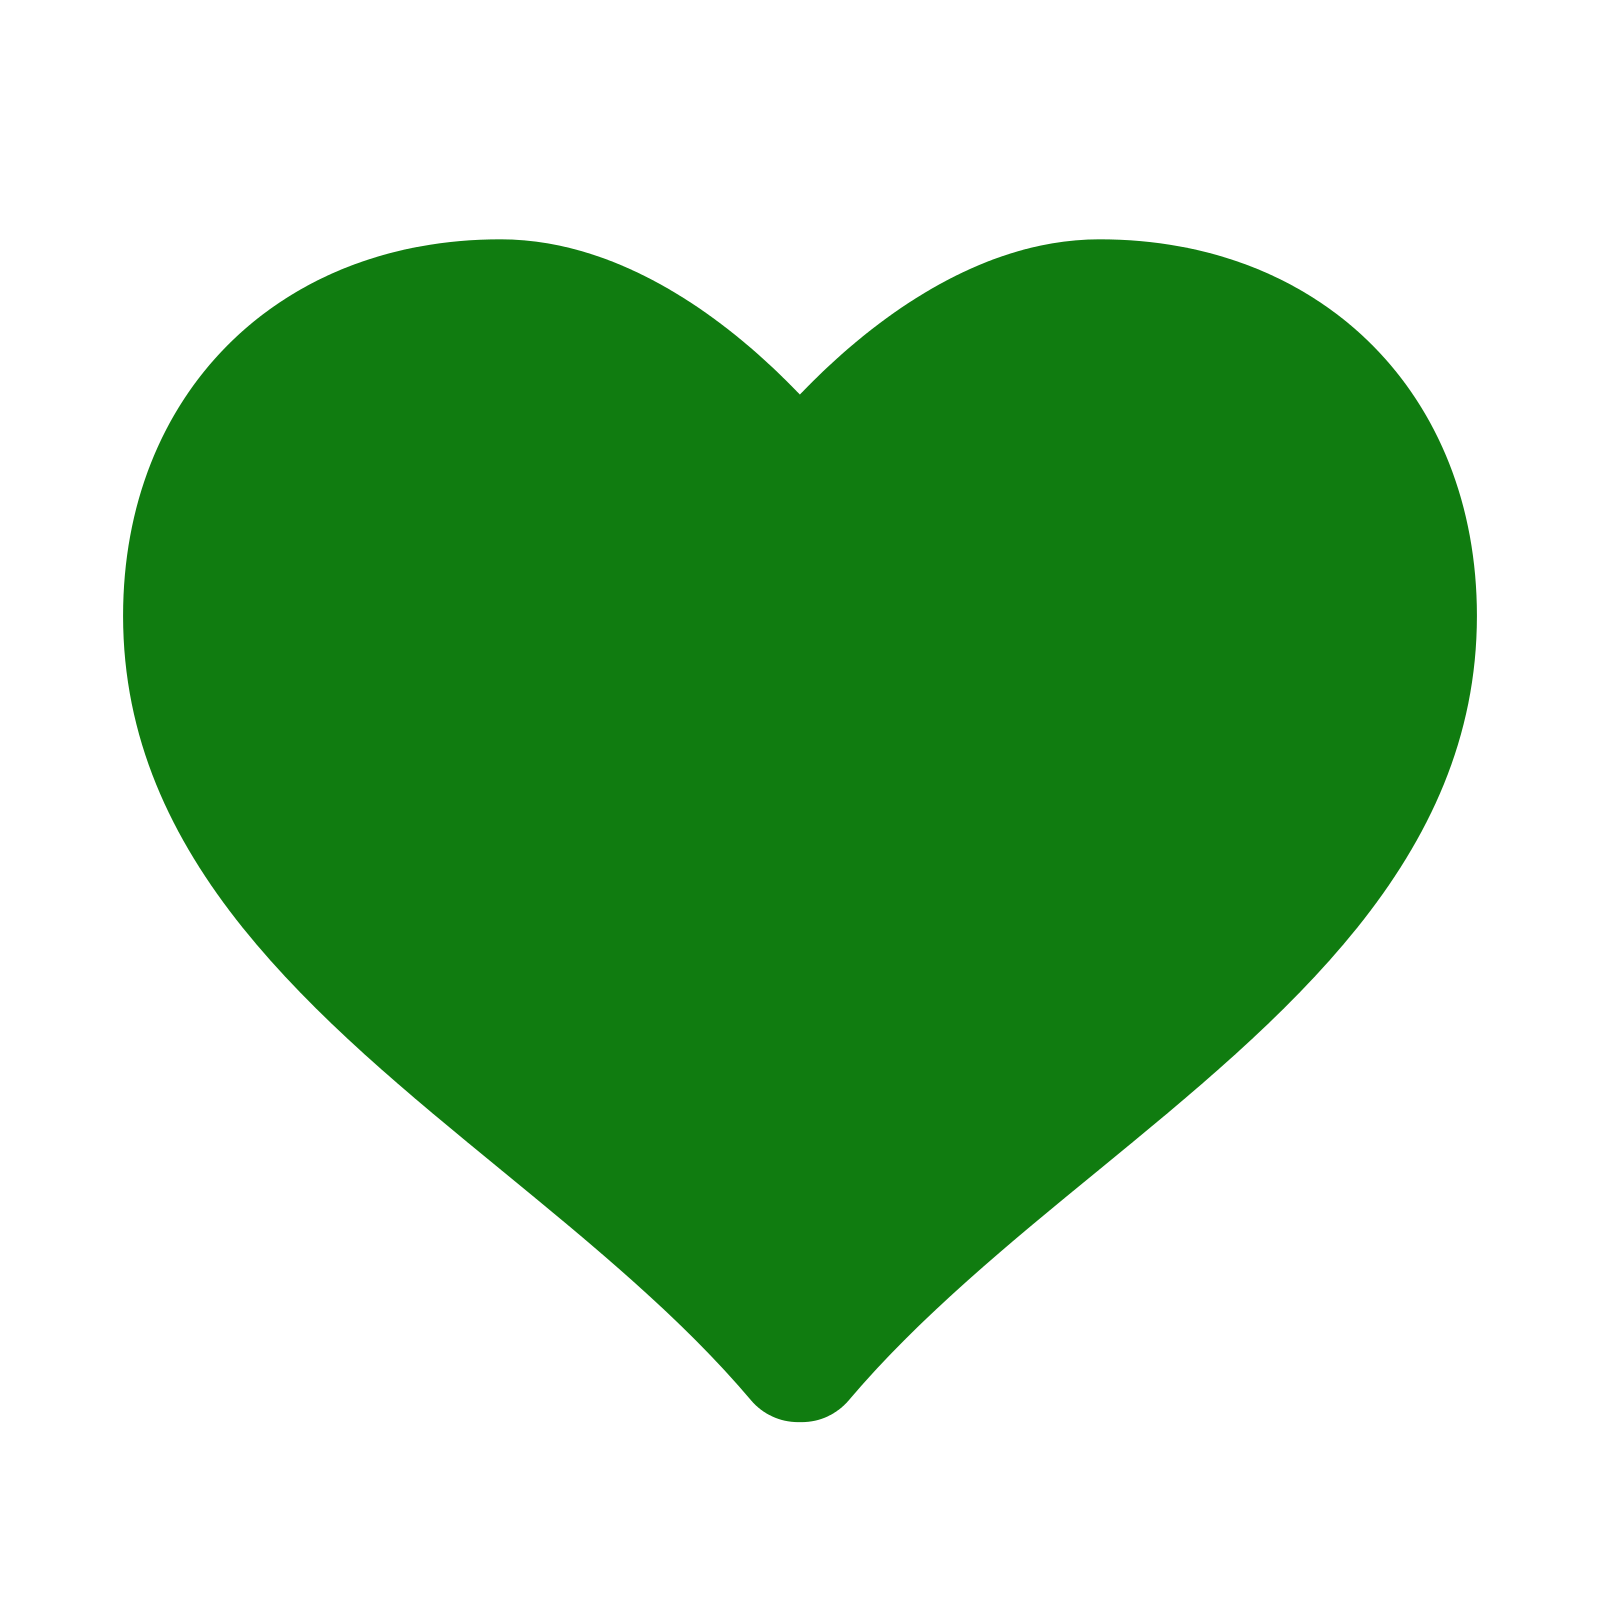 Heart earth clipart image library download Hearts around the world clipart collection image library download